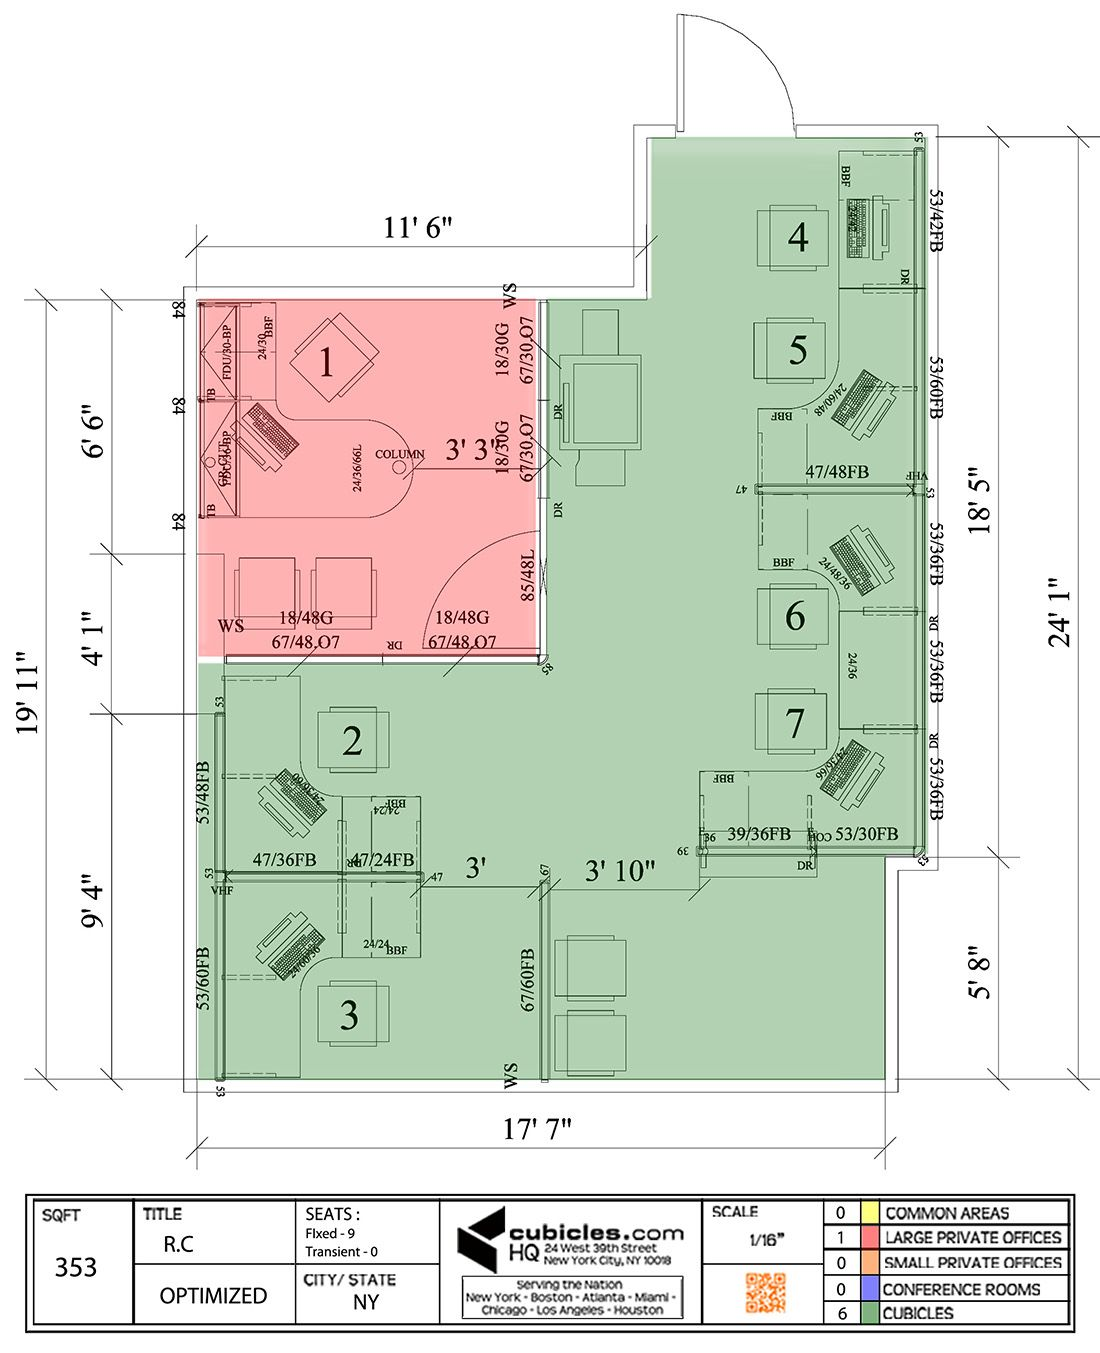 Office Layout Plan Office space planning, Office plan